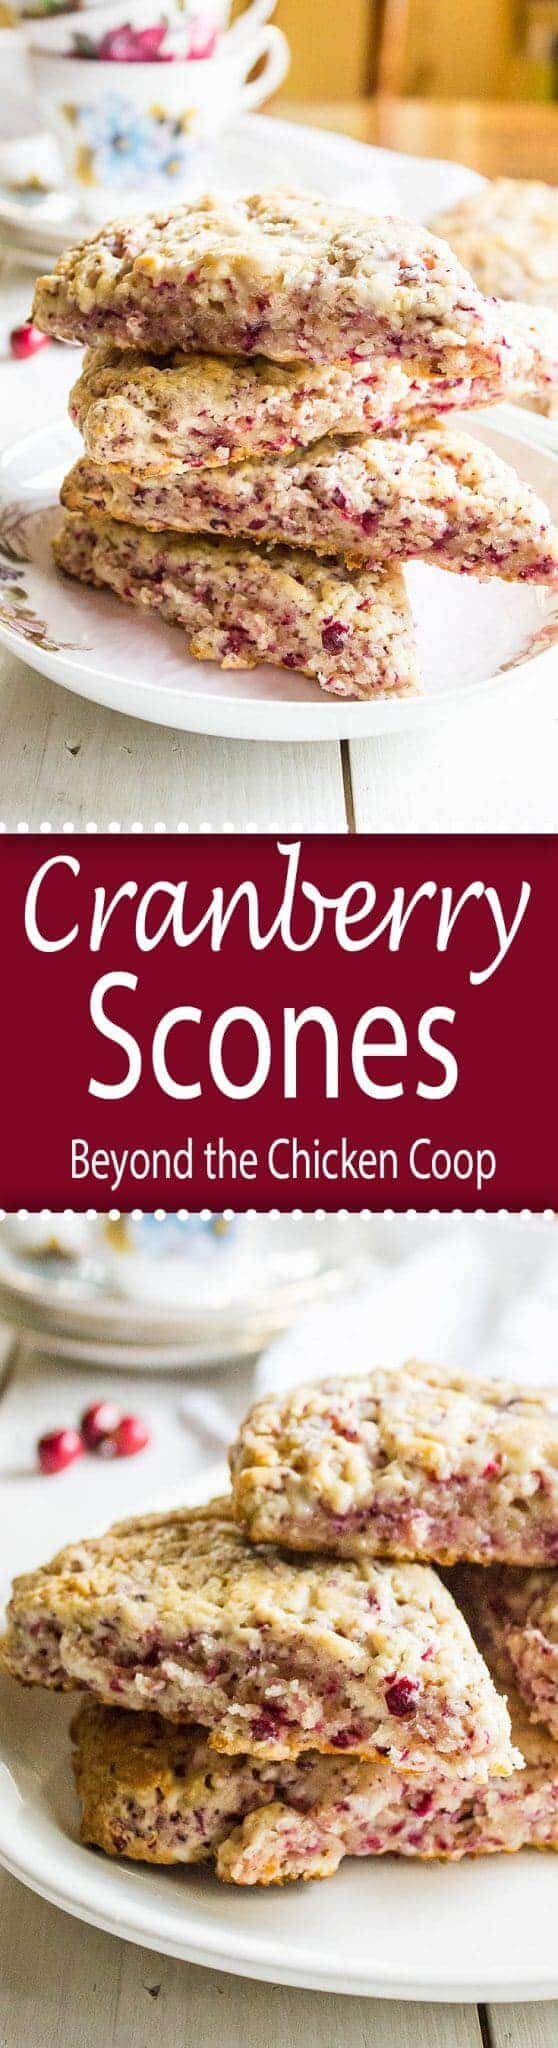 Cranberry Scones are perfect for breakfast or a midday snack!